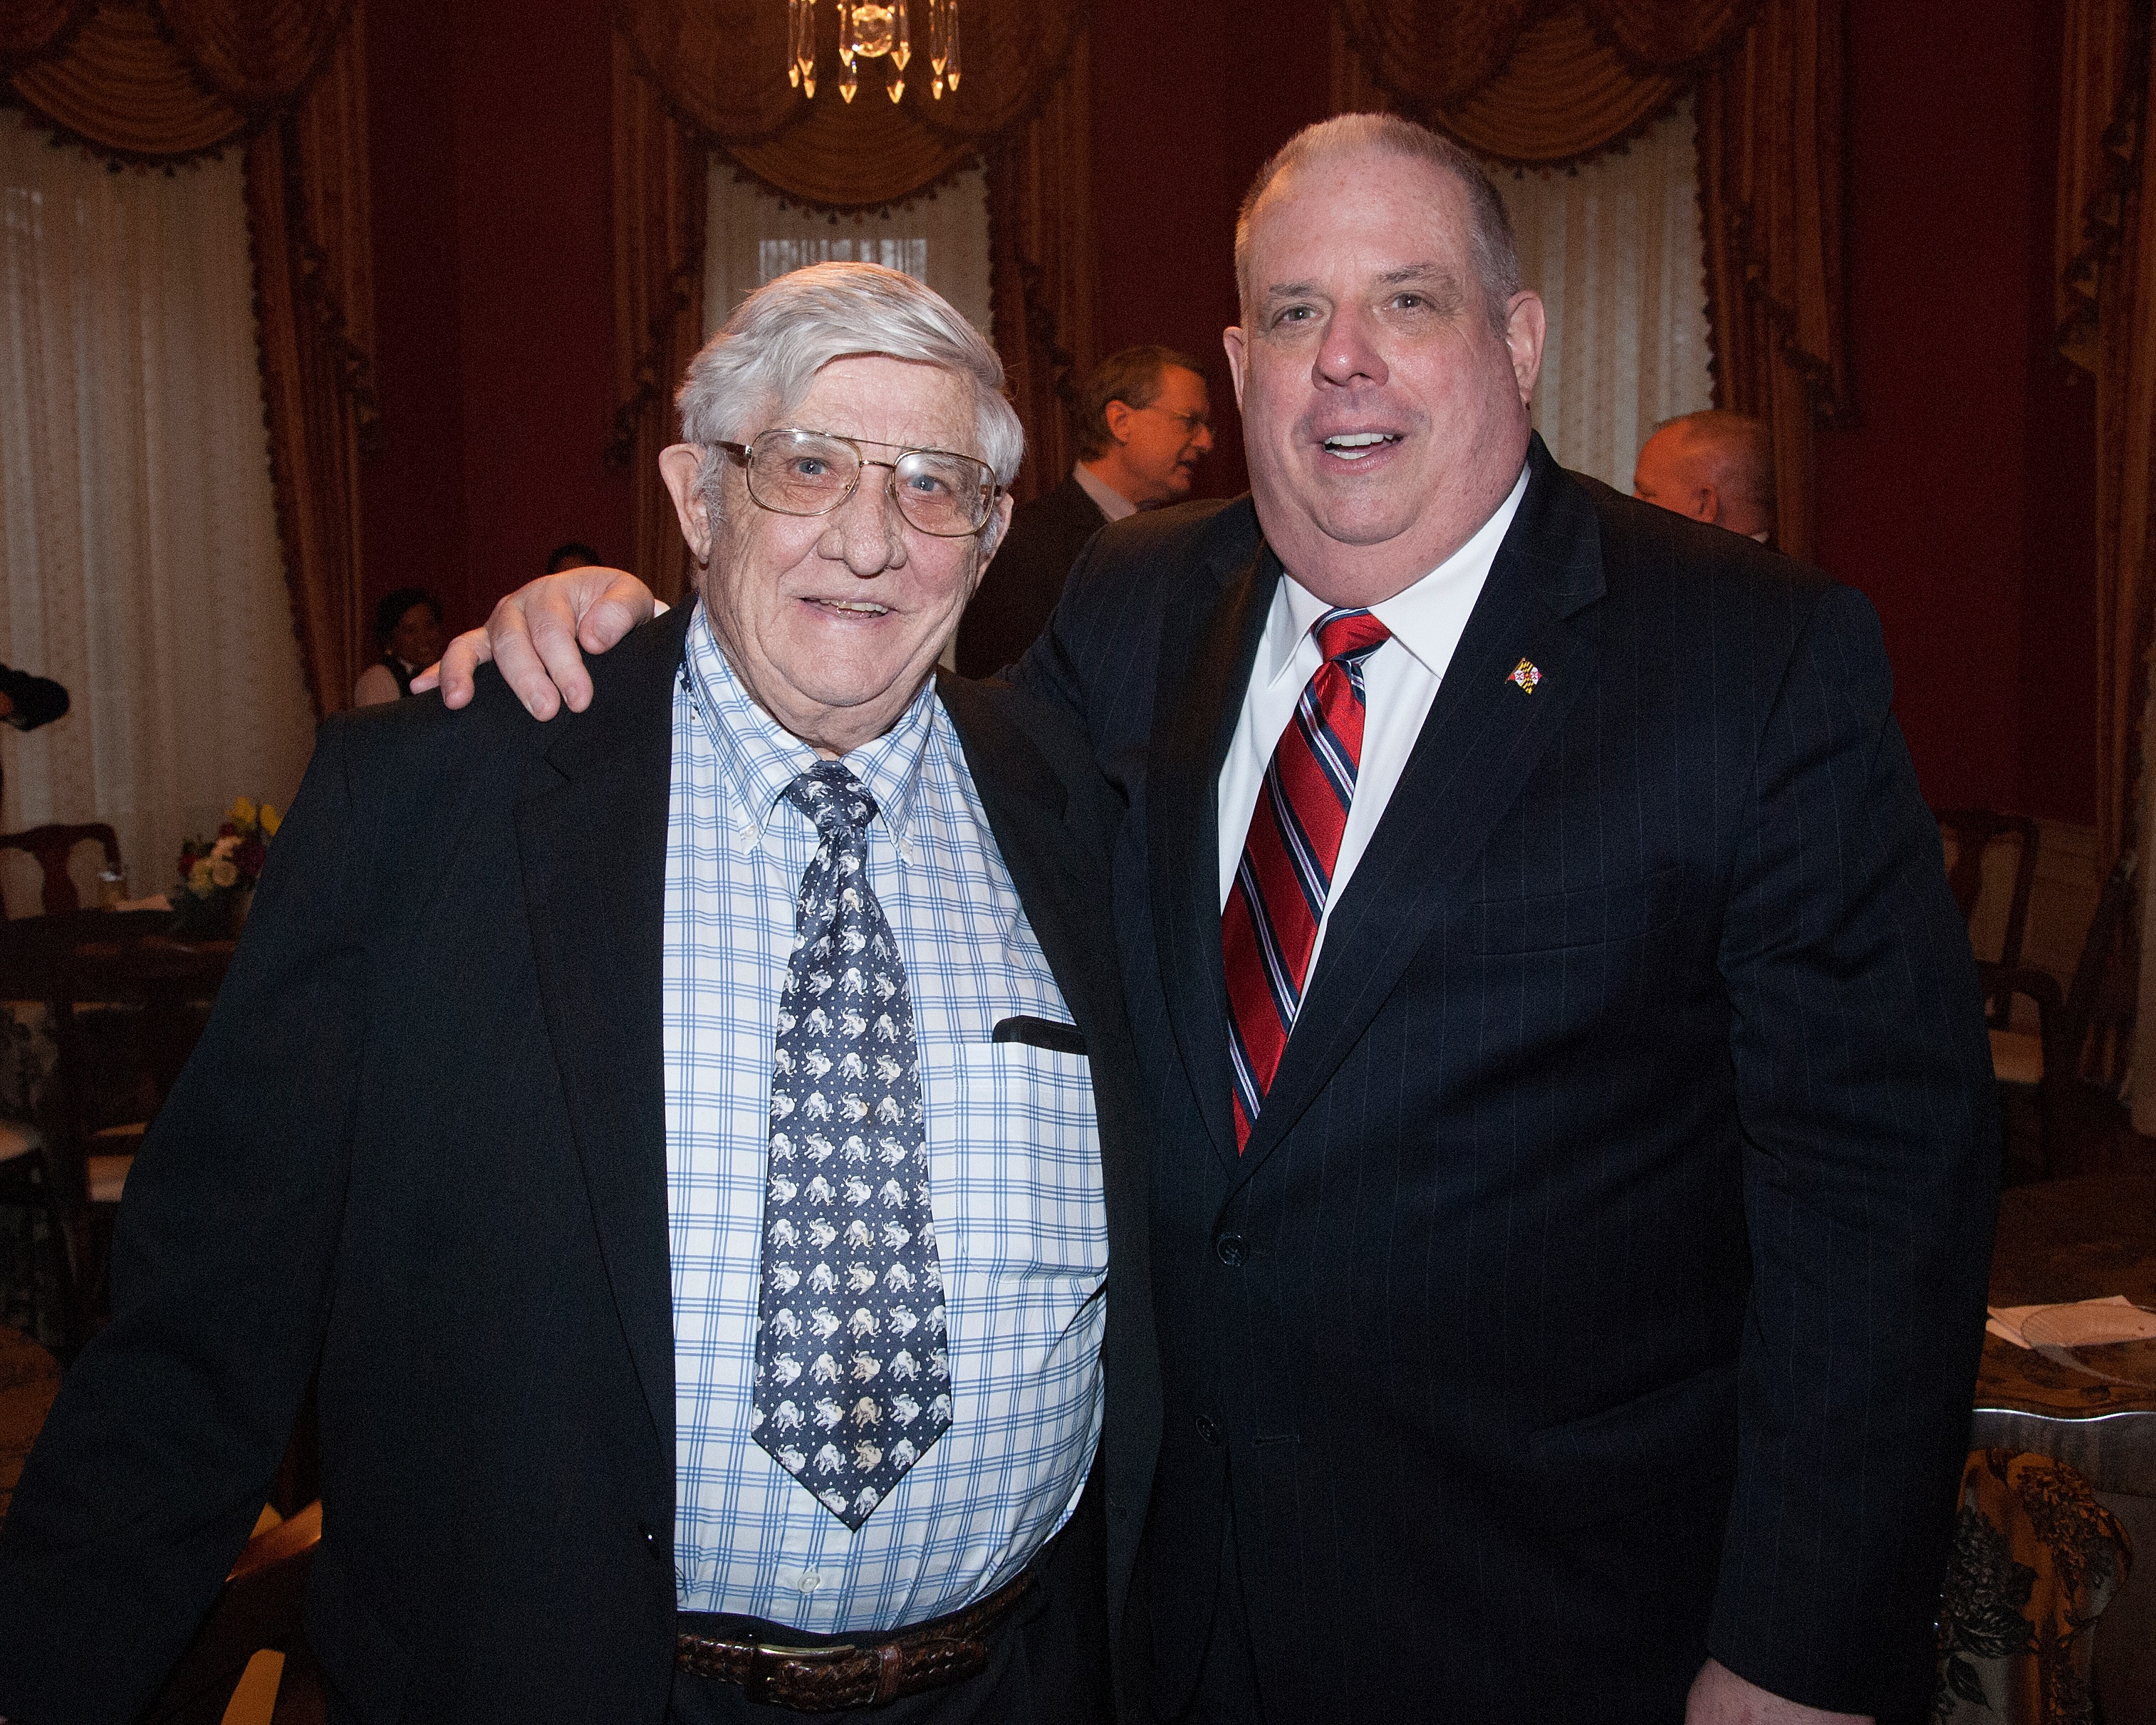 Rascovar: Larry Hogan Sr. showed courage when it counted